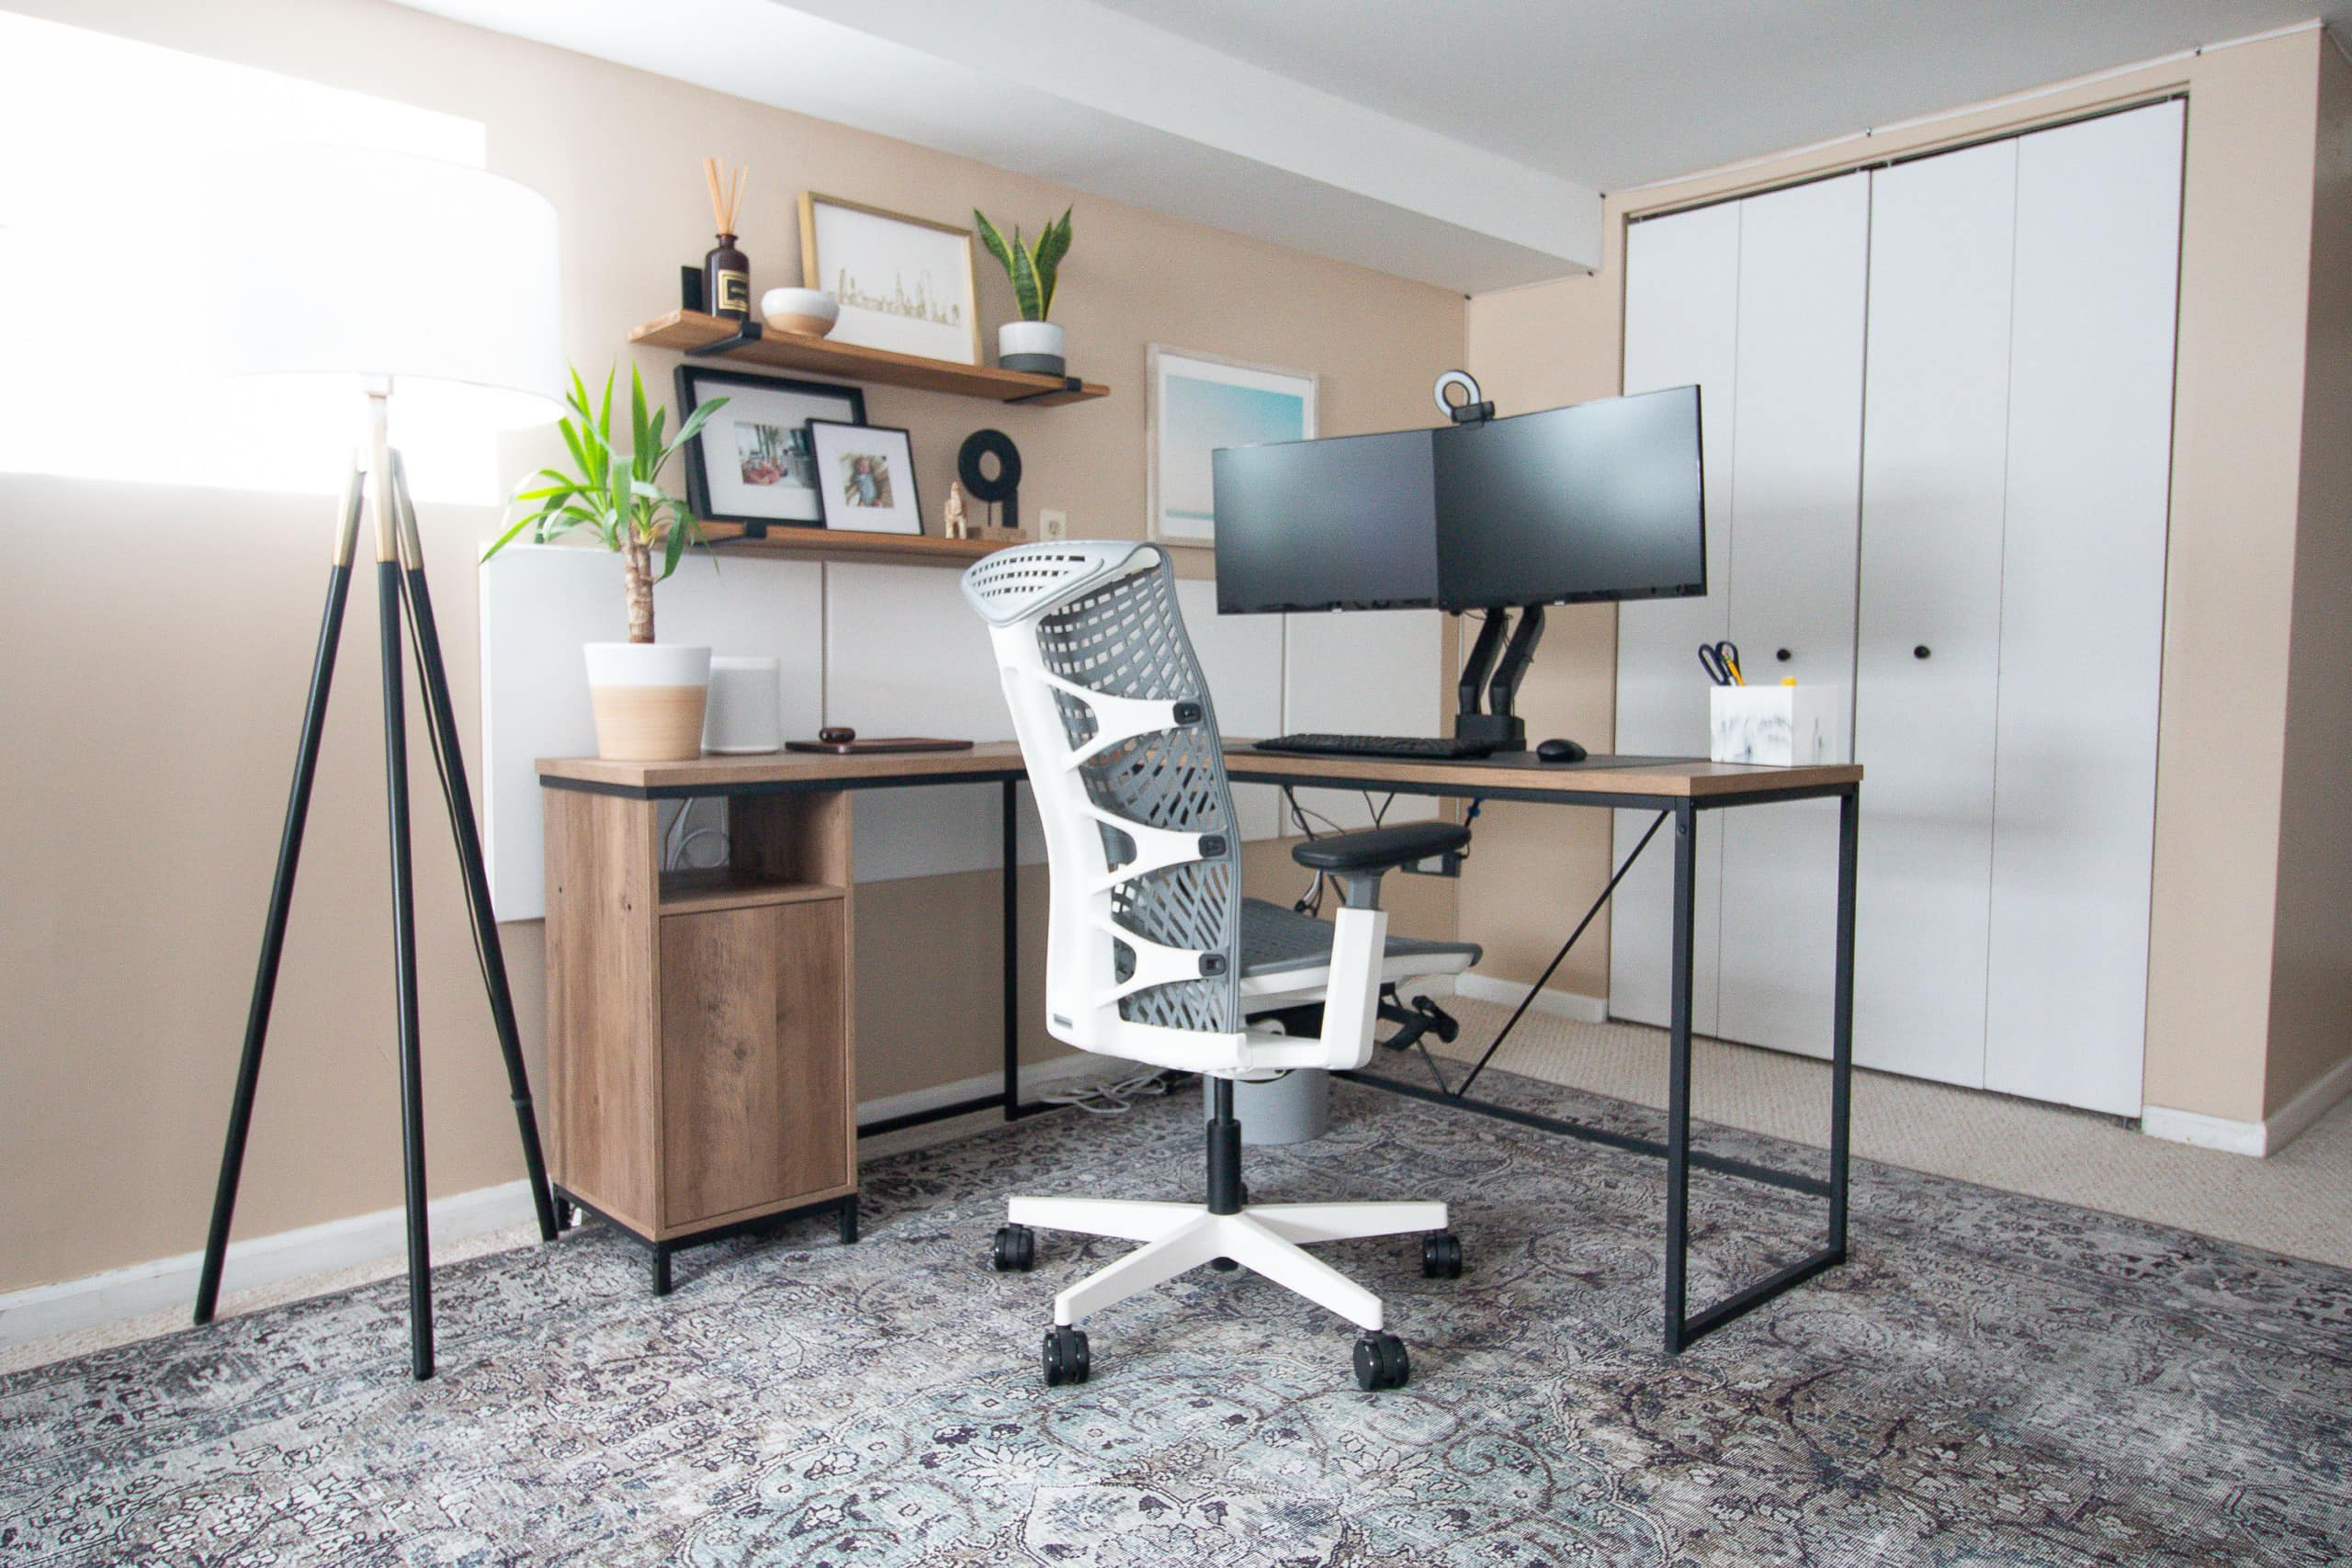 How to add soundproof panels to your home office